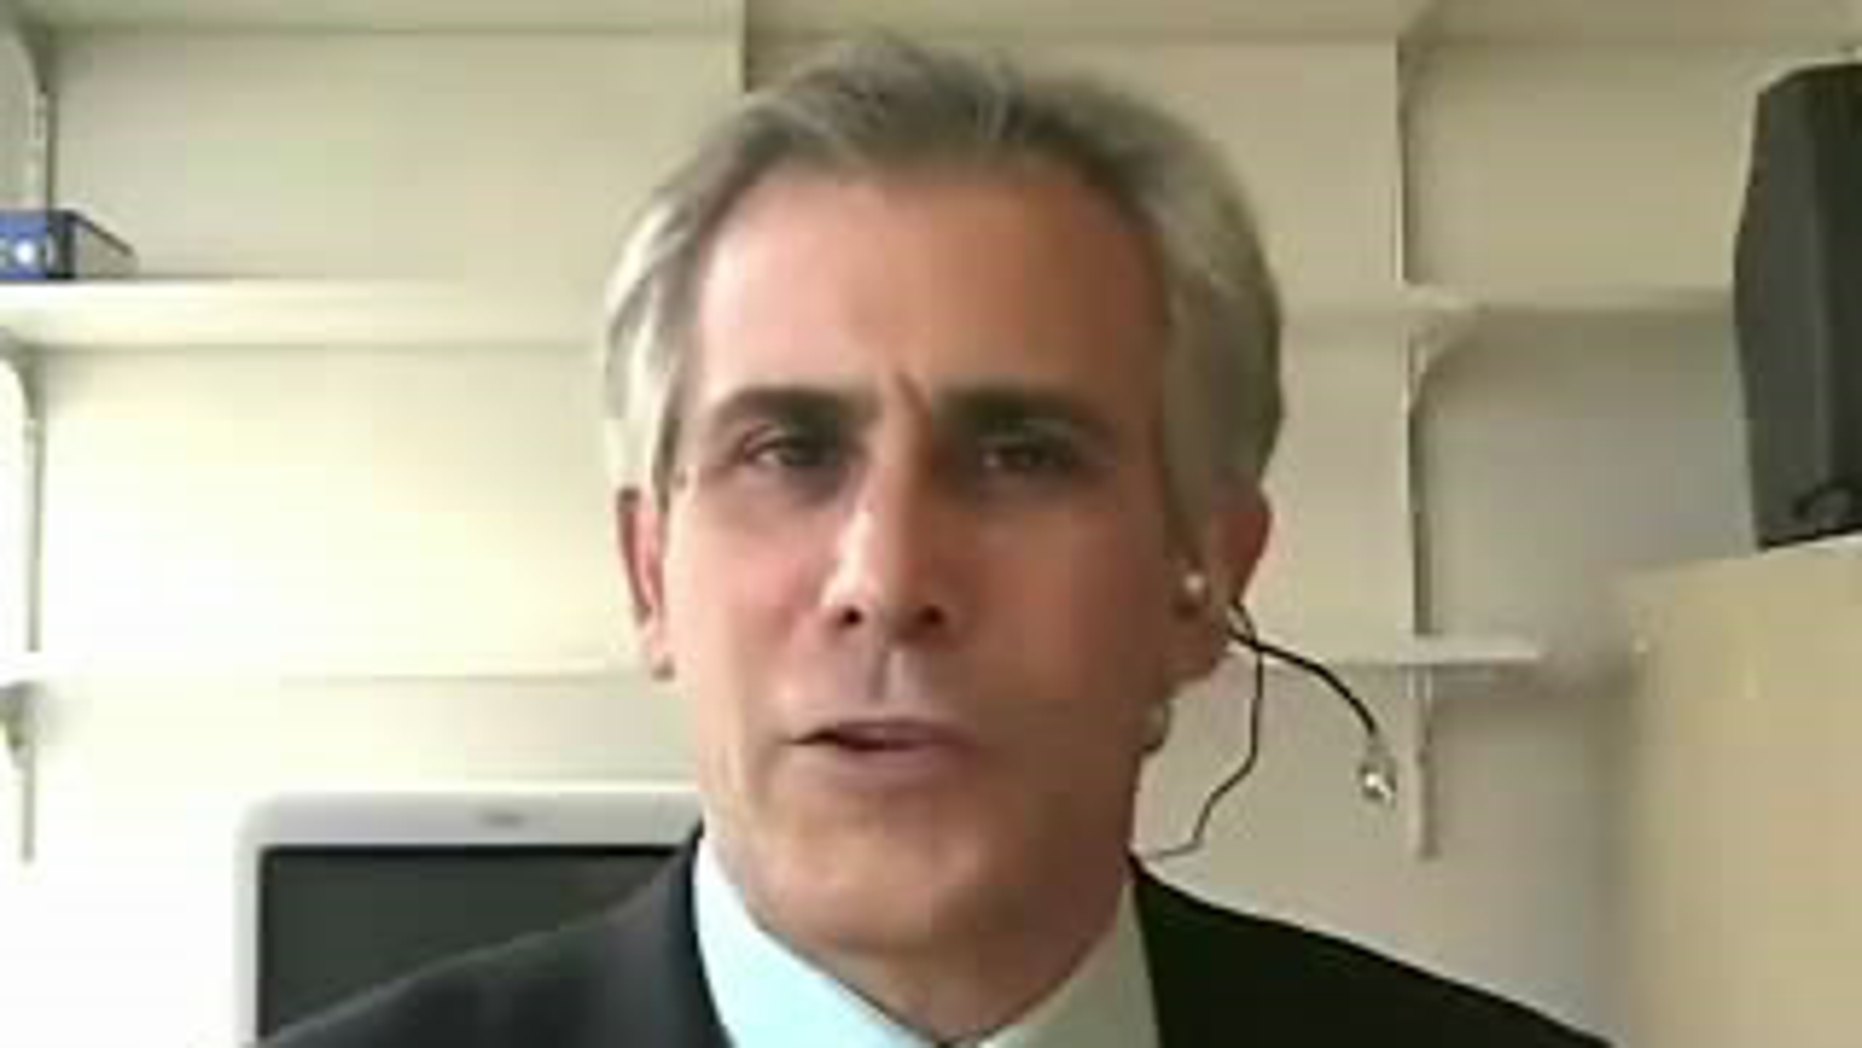 Mother Jones journalist David Corn was counseled three years ago about inappropriately touching female employees, the magazine said Thursday.